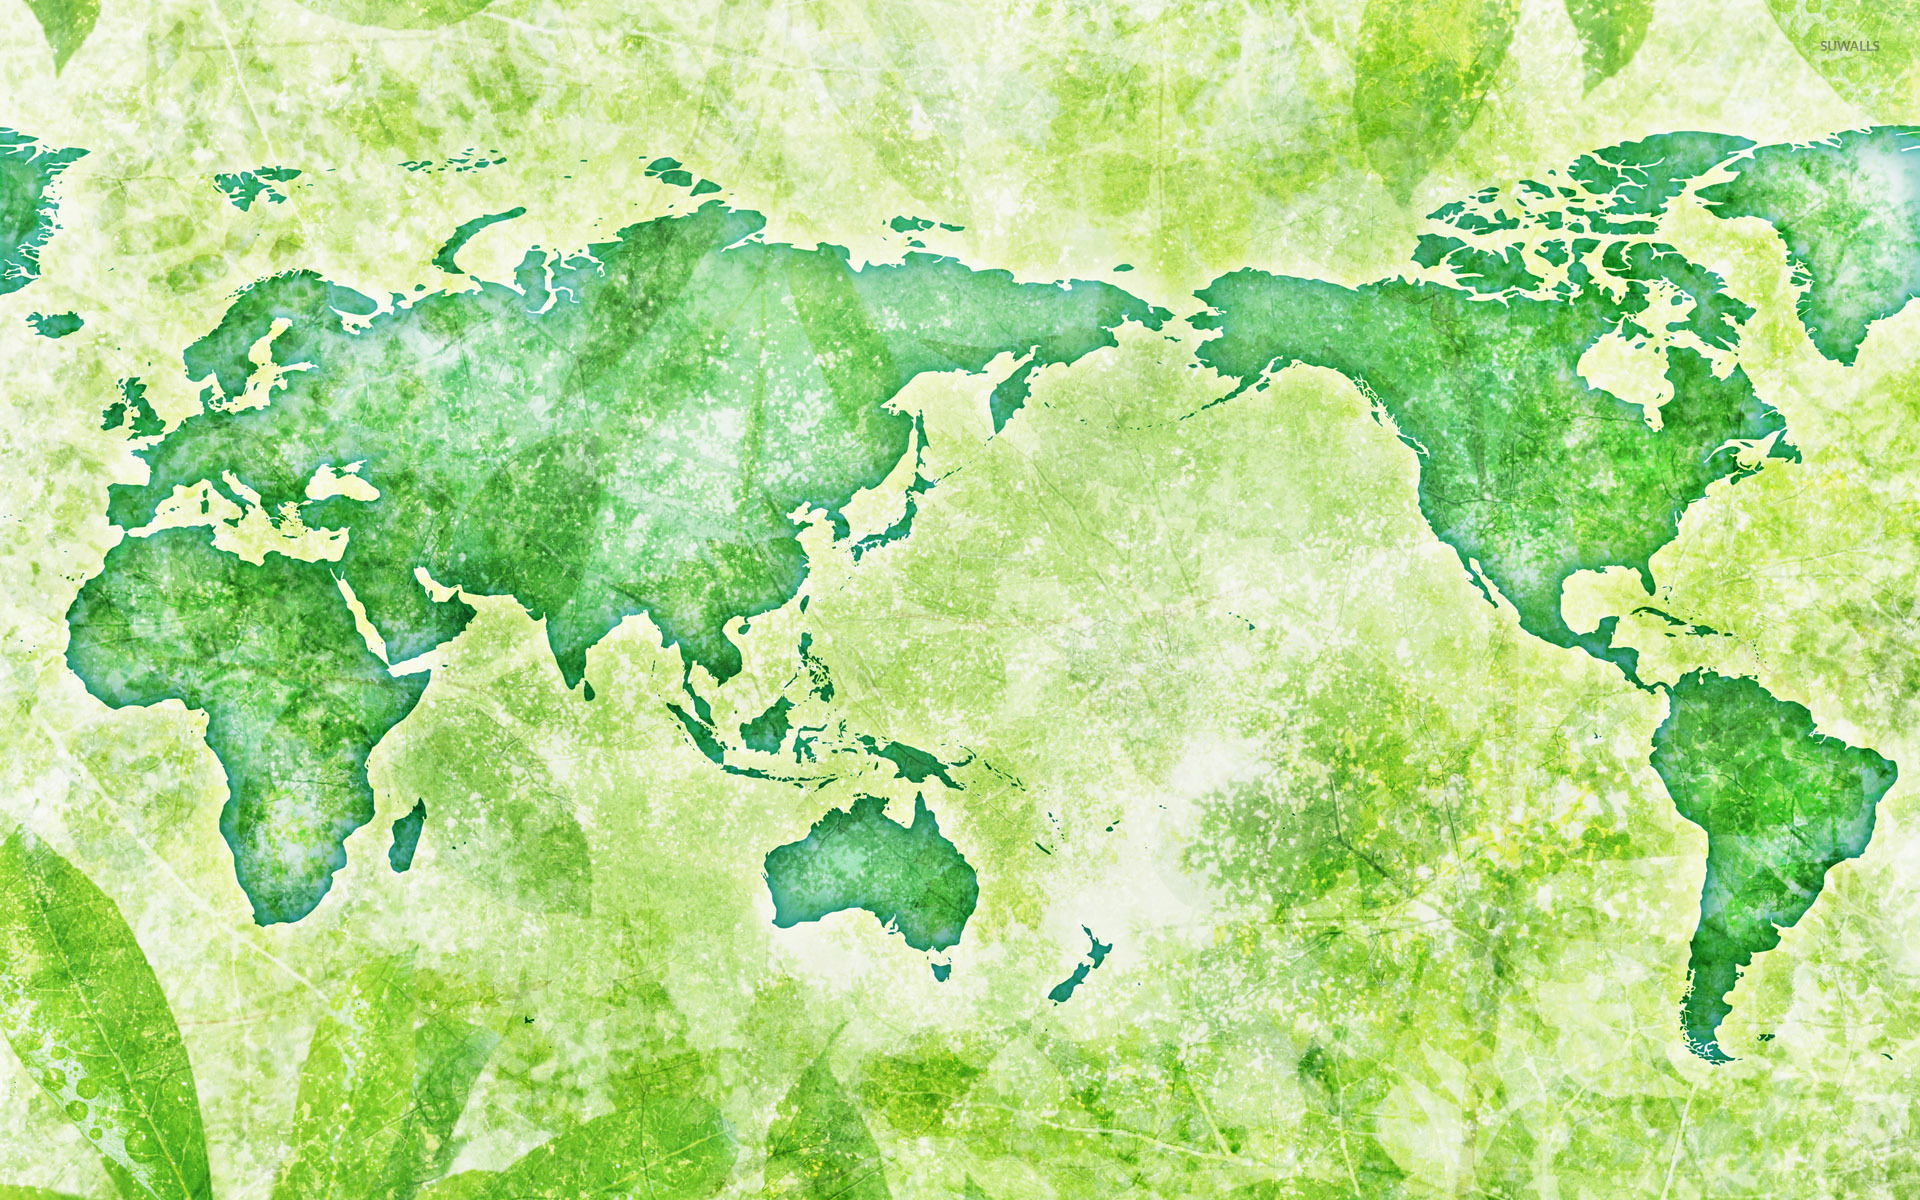 Green map of the world wallpaper digital art wallpapers 54471 green map of the world wallpaper gumiabroncs Images